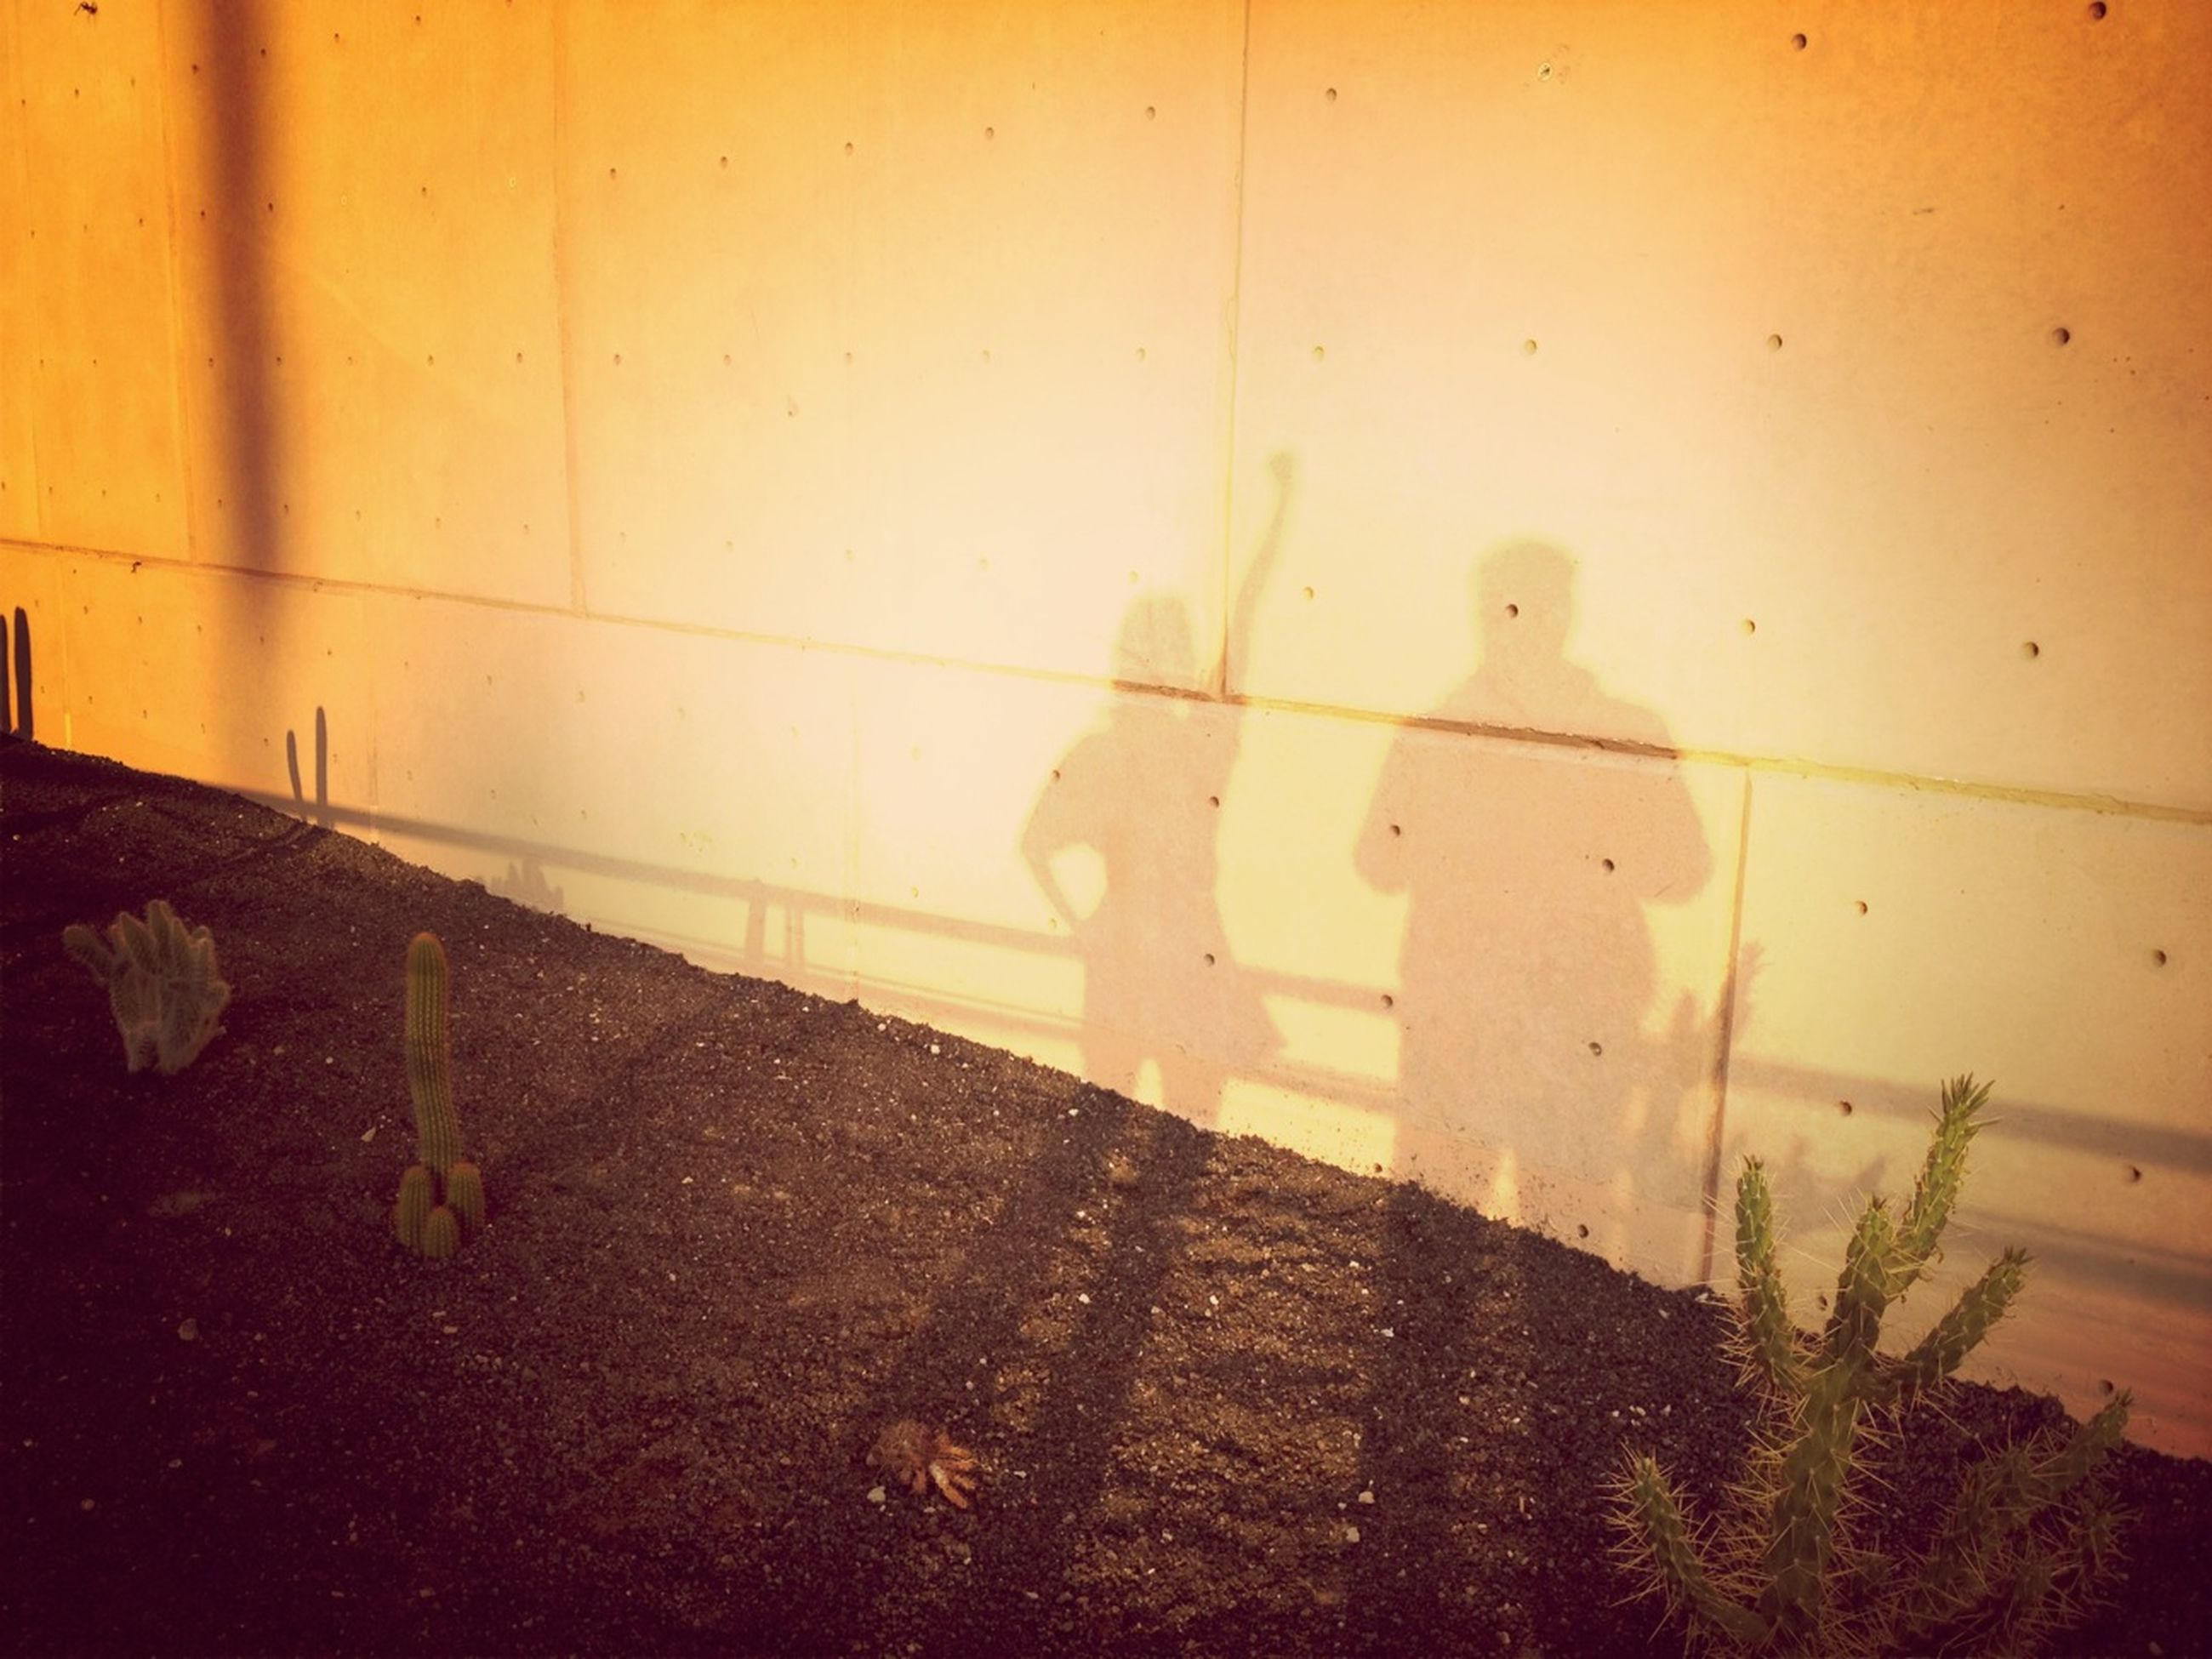 built structure, shadow, wall - building feature, architecture, sunlight, building exterior, outdoors, day, wall, street, focus on shadow, plant, sidewalk, walking, footpath, nature, high angle view